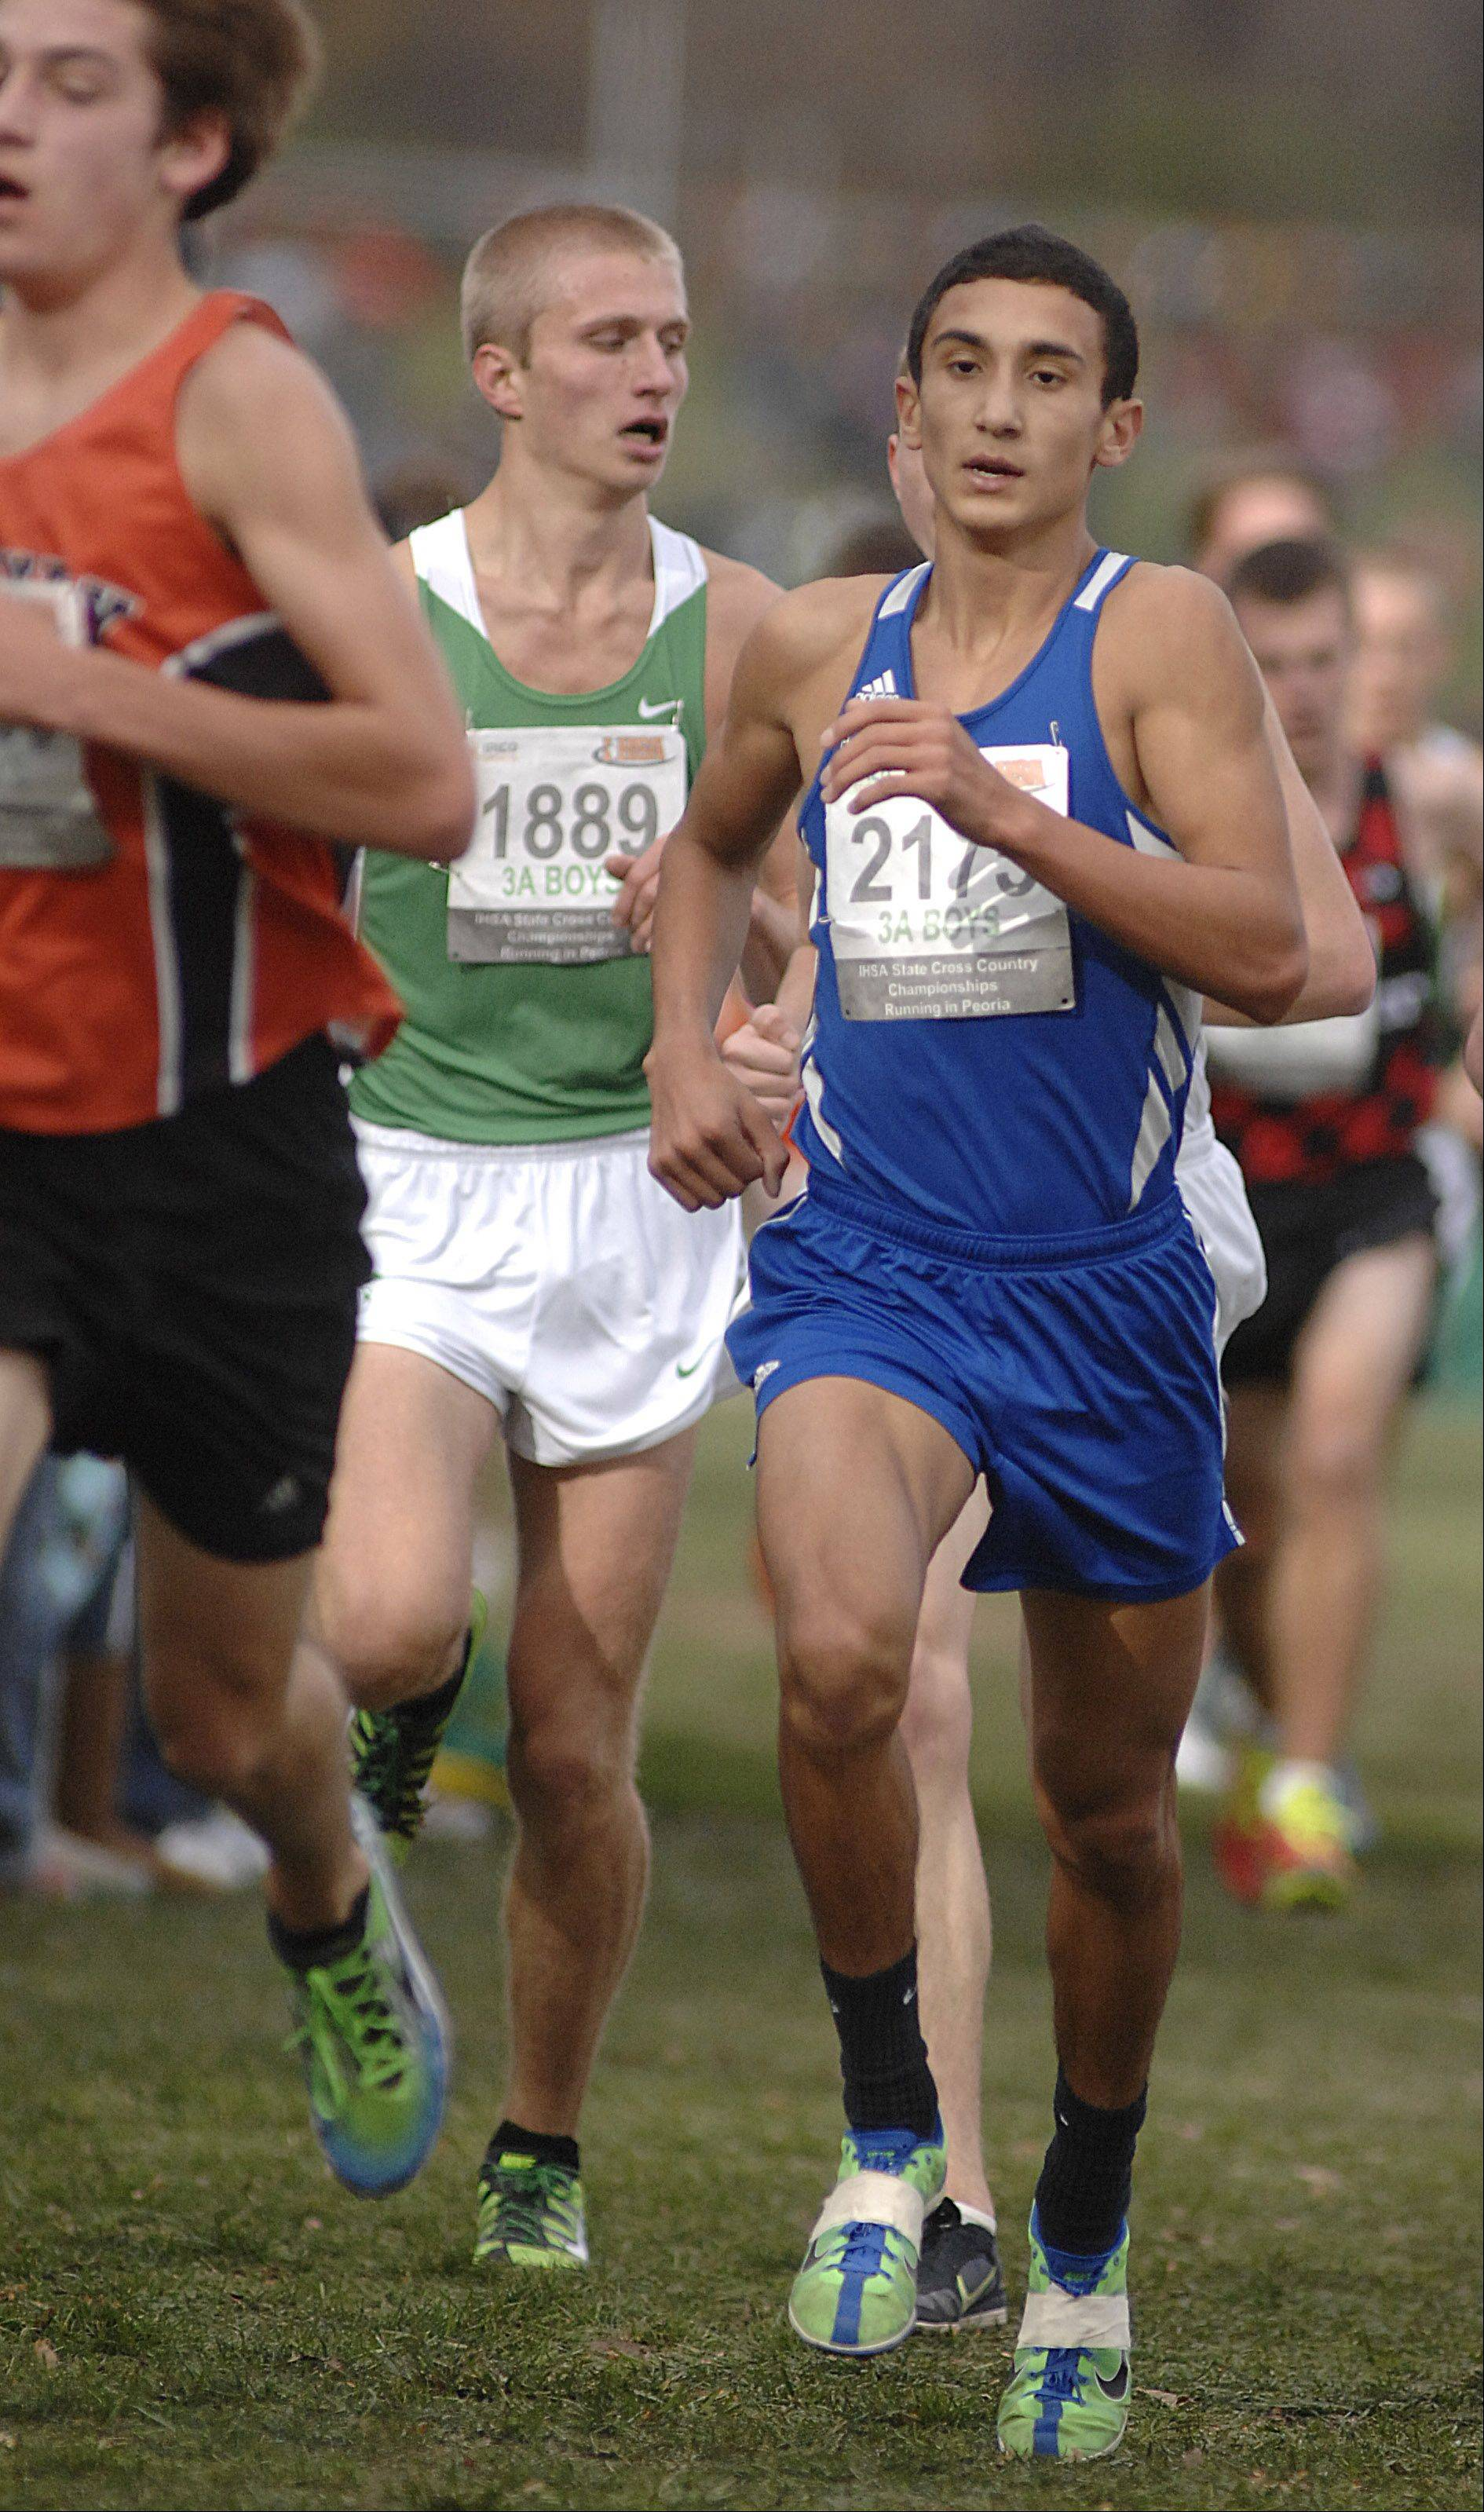 Laura Stoecker/lstoecker@dailyherald.comWarren's Martin Martinez in the state cross country 3A final in Peoria on Saturday, November 3.